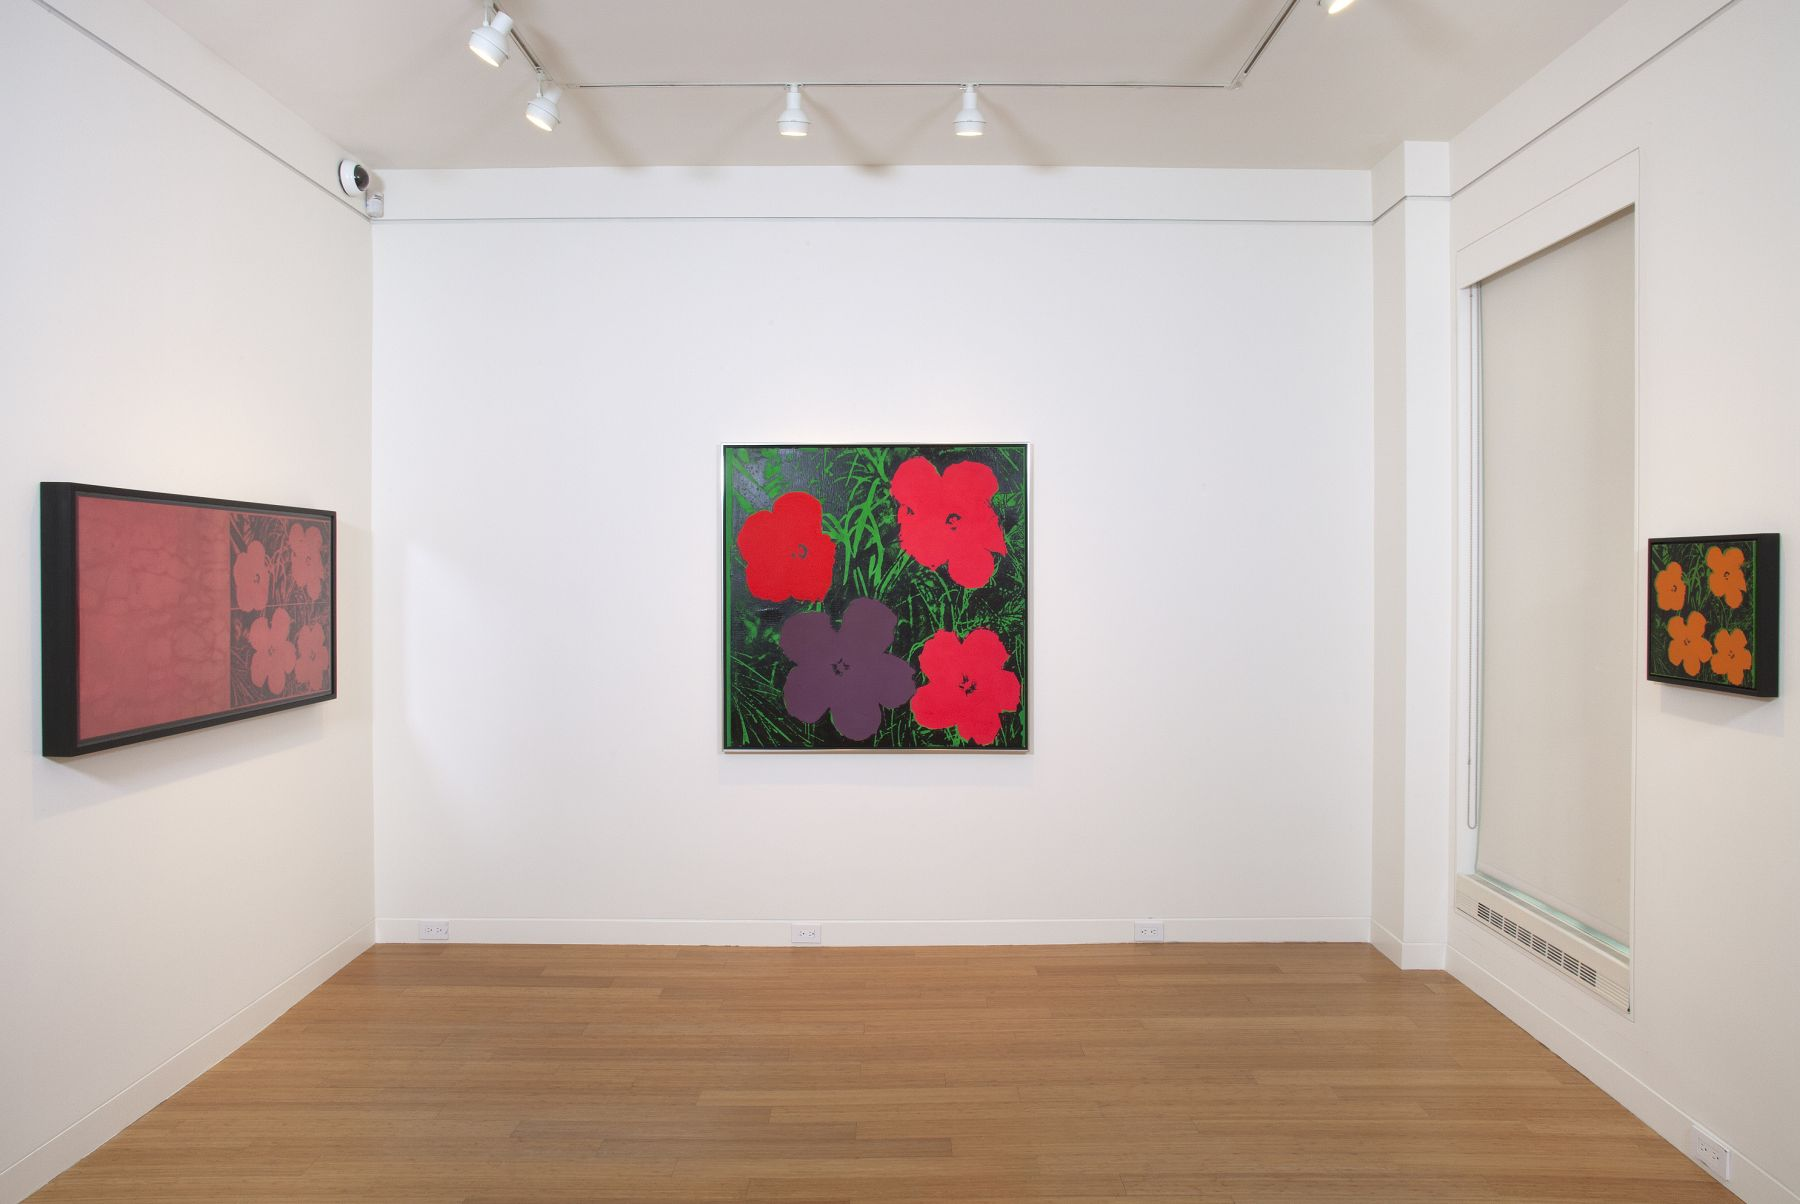 Andy Warhol, Flowers, 1964/1965.  , © 2012 The Andy Warhol Foundation for the Visual Arts, Inc./Artists Rights Society (ARS), New York.